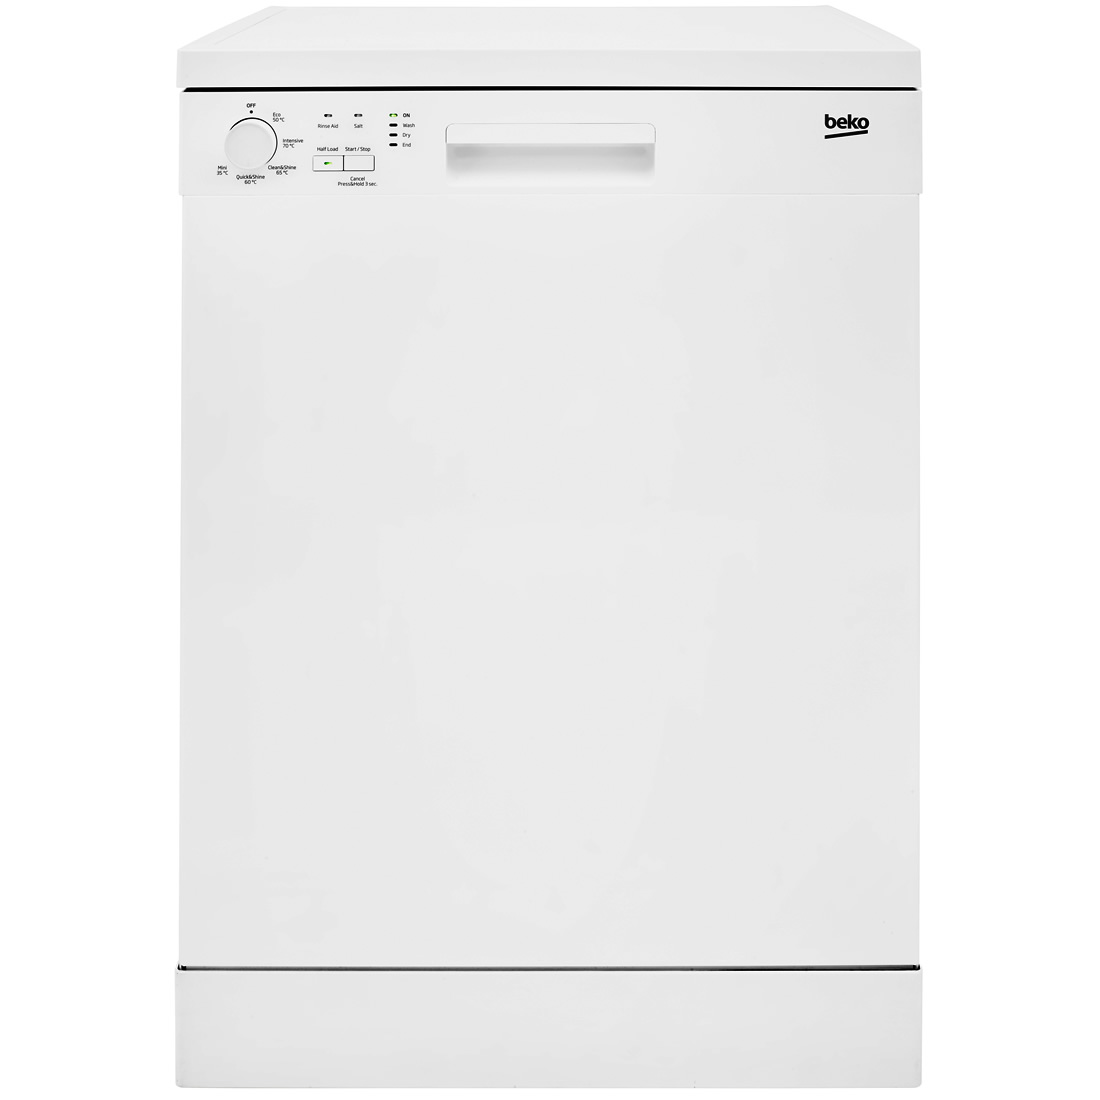 Image of 13-Place Dishwasher 5 Progs Class A+ White